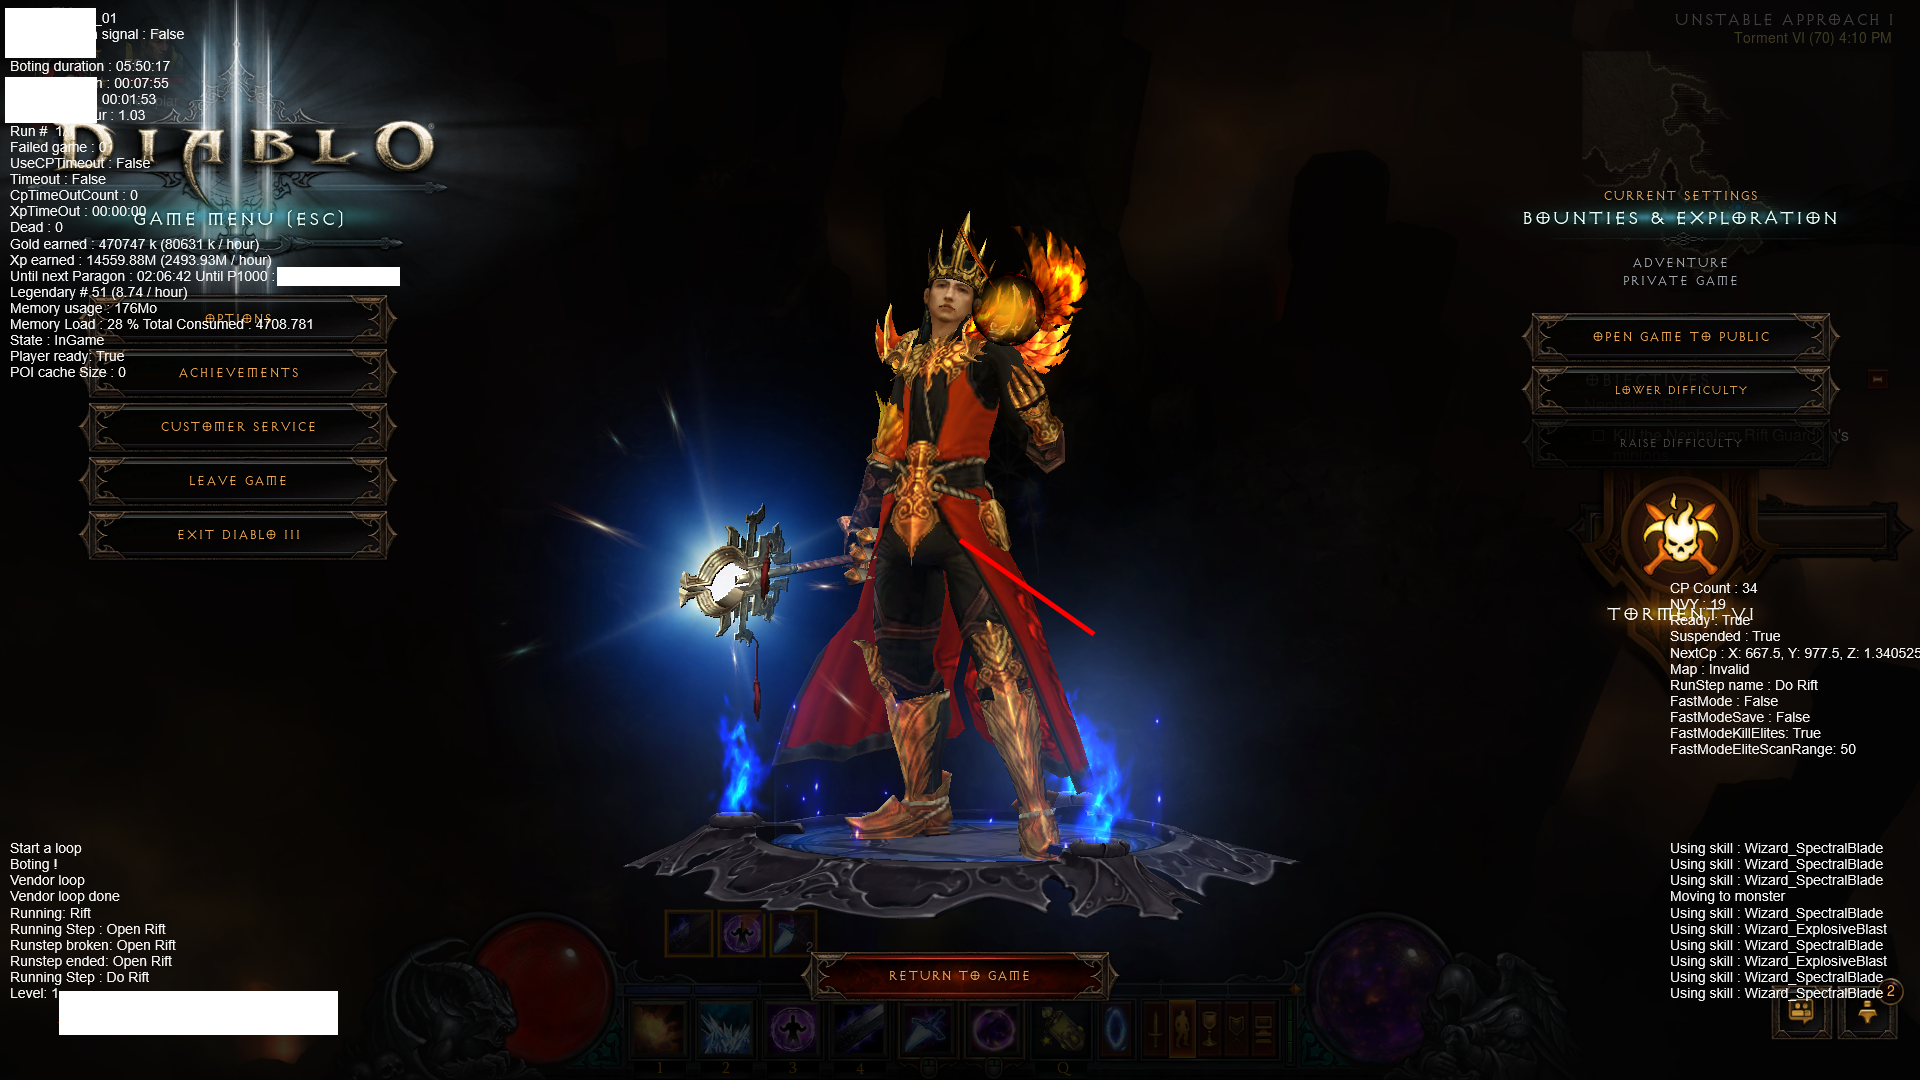 Wand of Woh Build - 2400M/hour exp! | Diablo 3 Reaper of Souls BOT